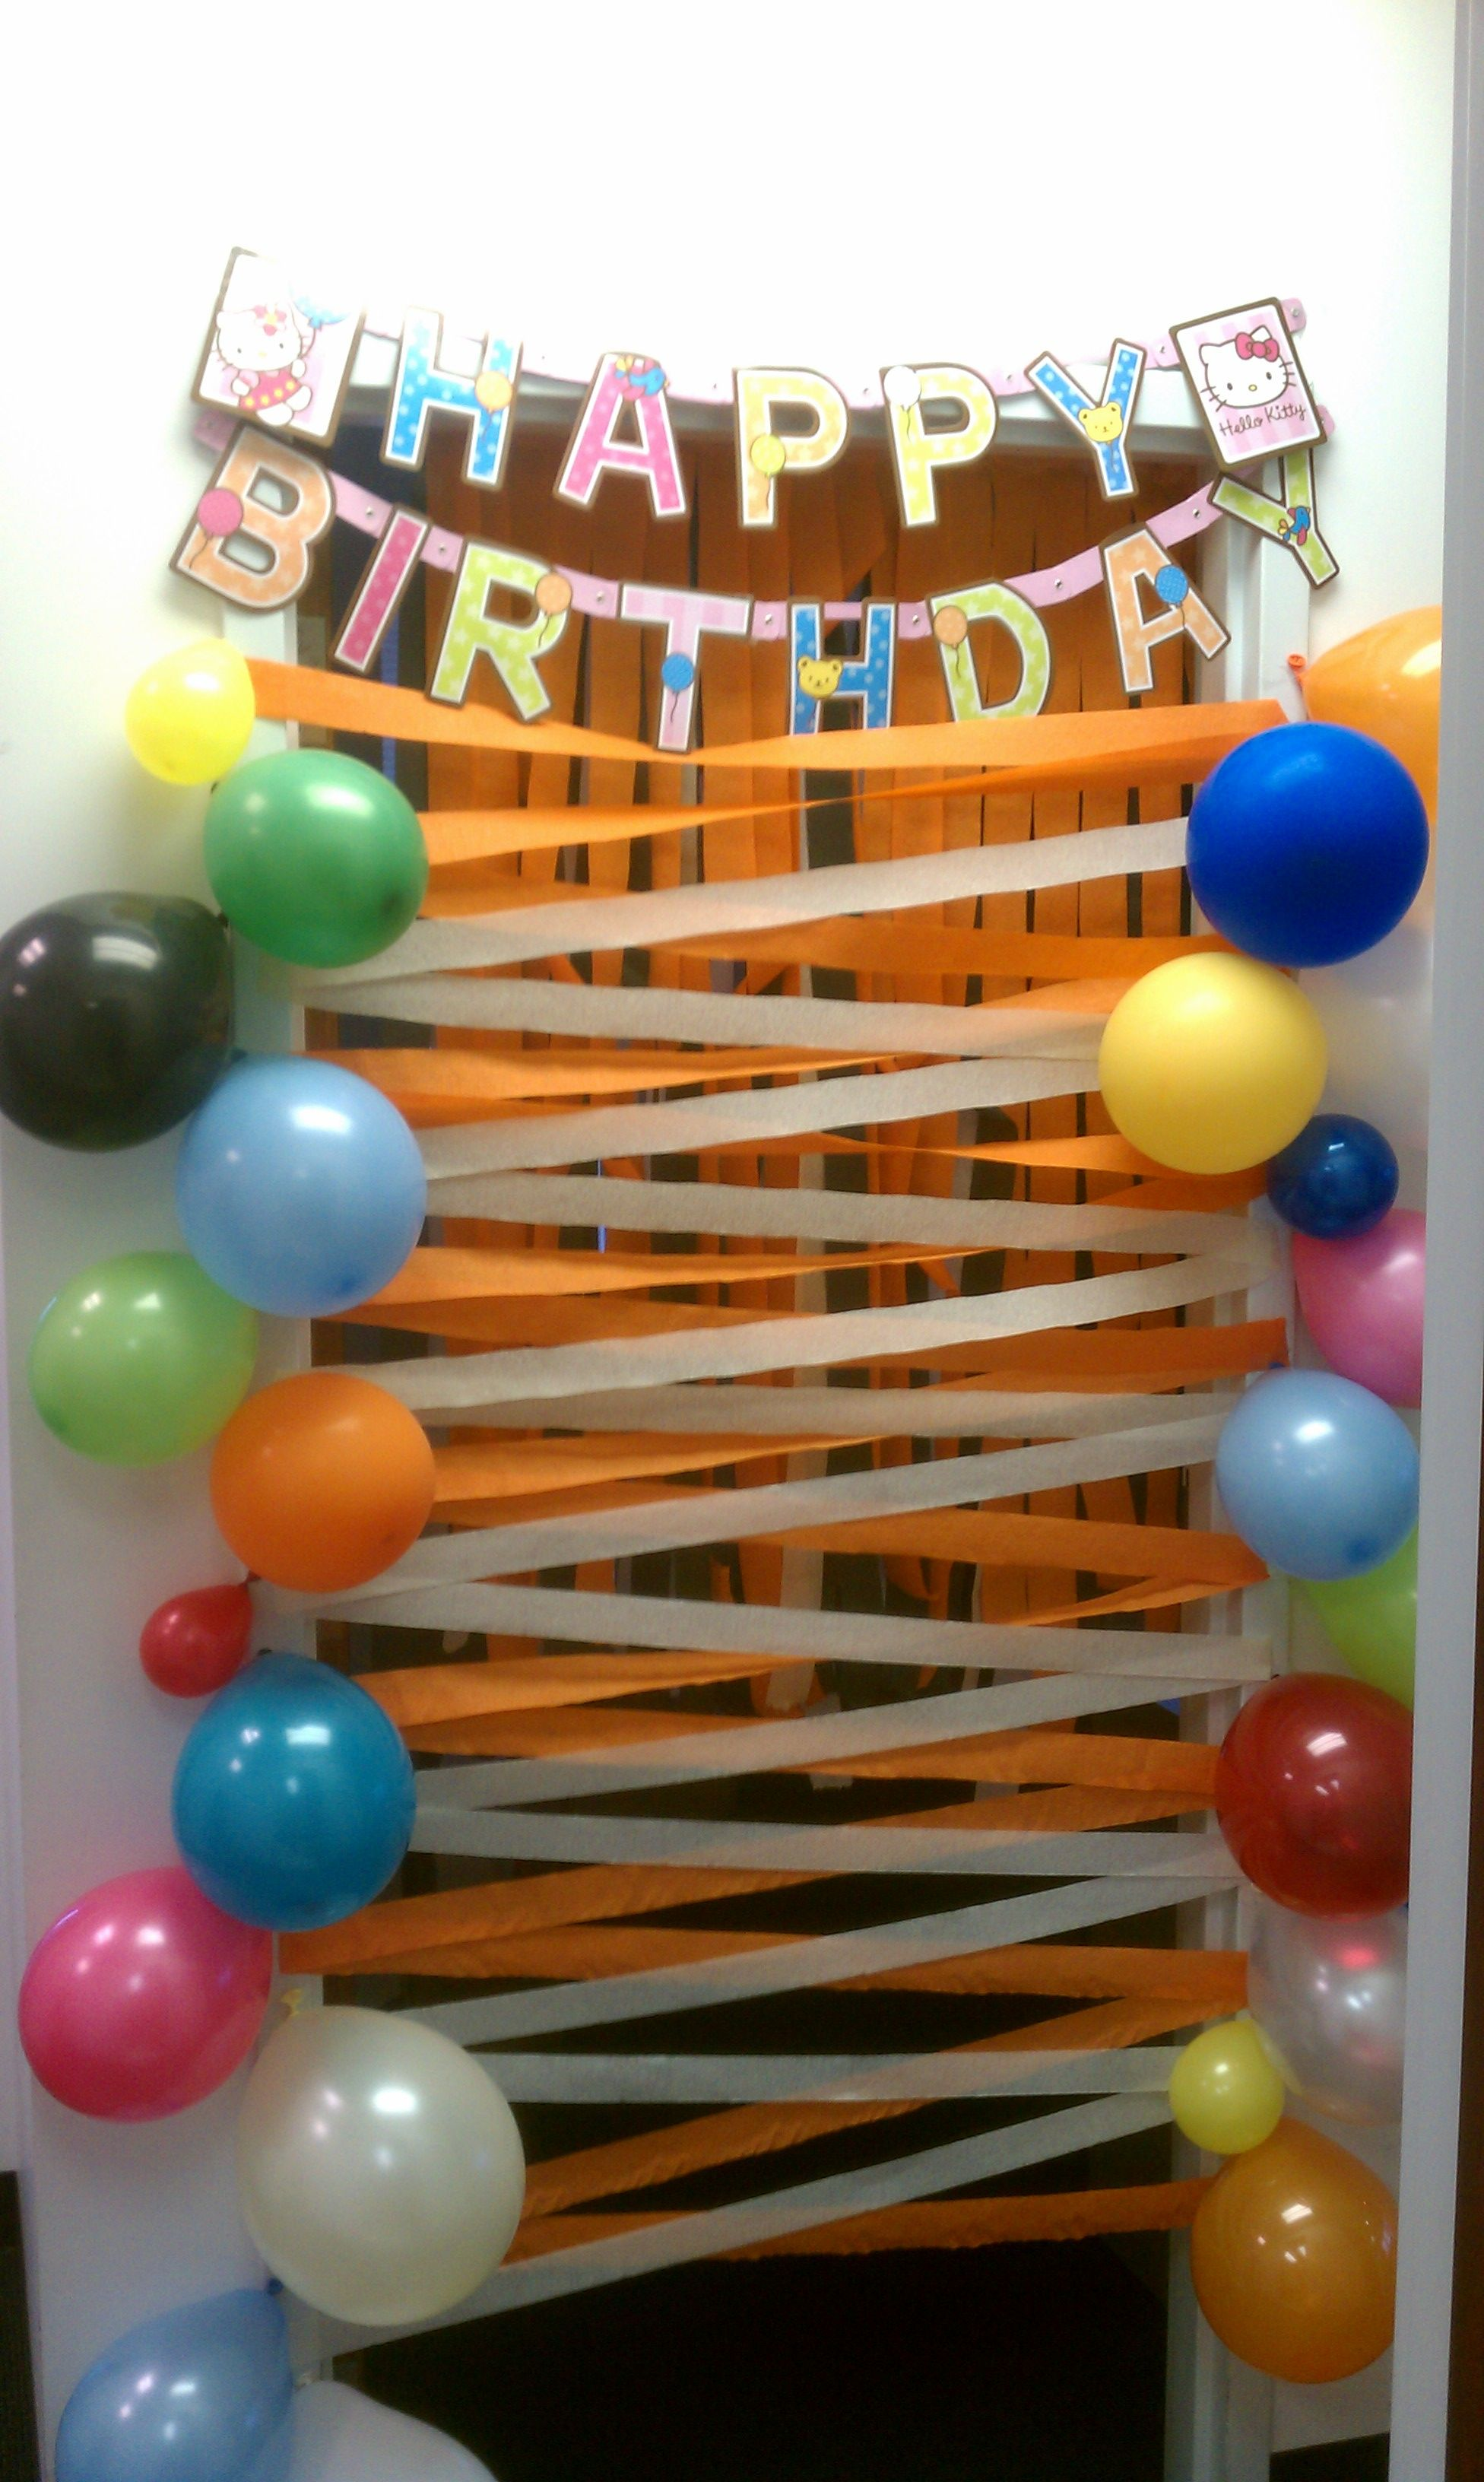 A nice birthday surprise for my coworker birthday door for Room decor ideas for husband birthday